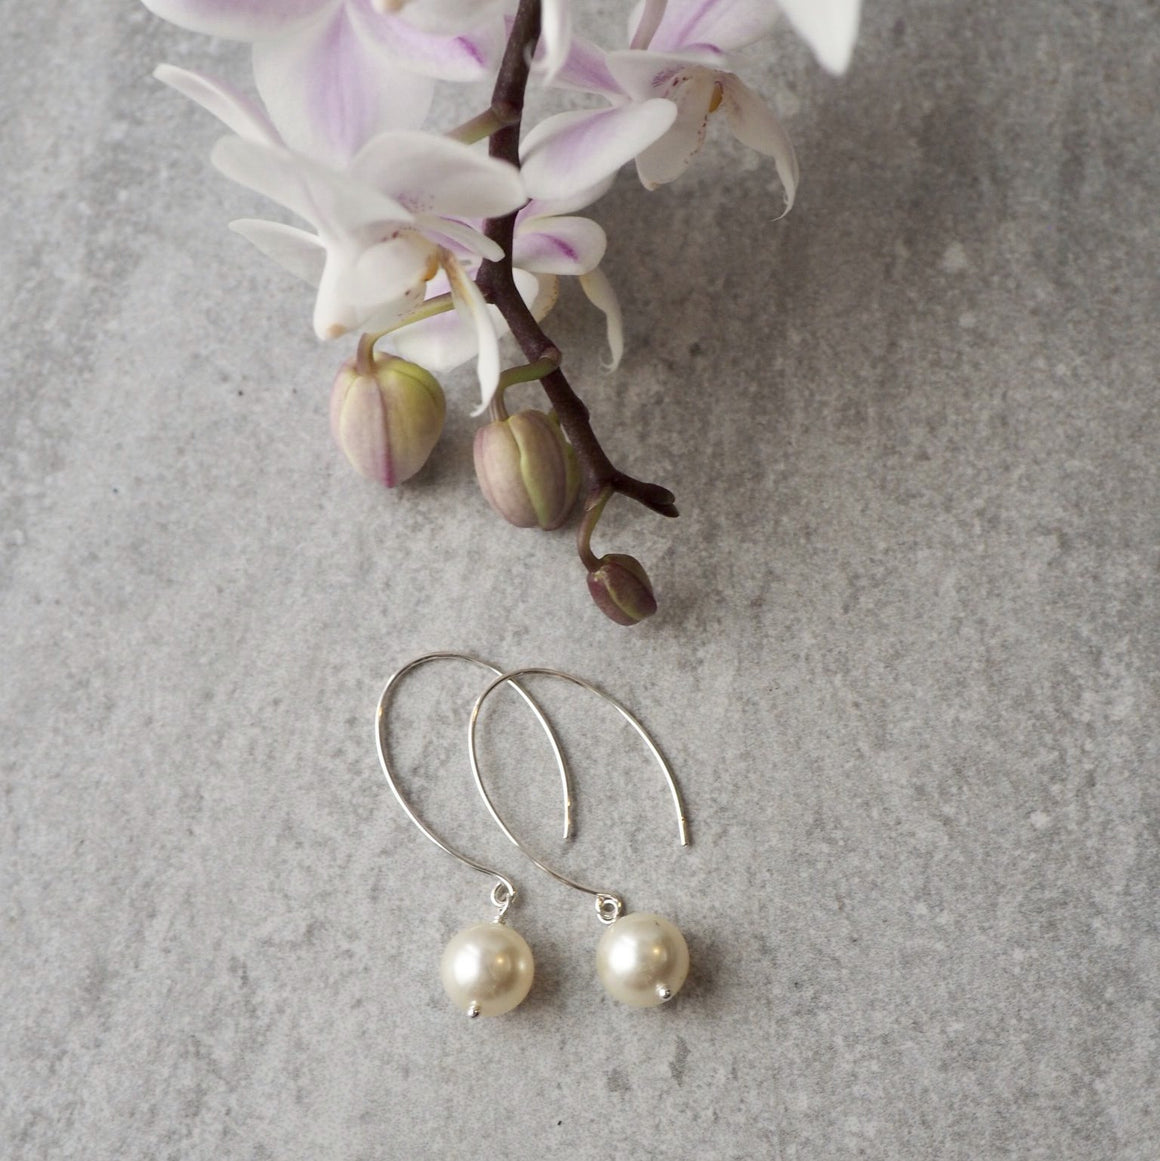 Modern Pearl Sterling Silver Earrings by Nancy Wallis Designs